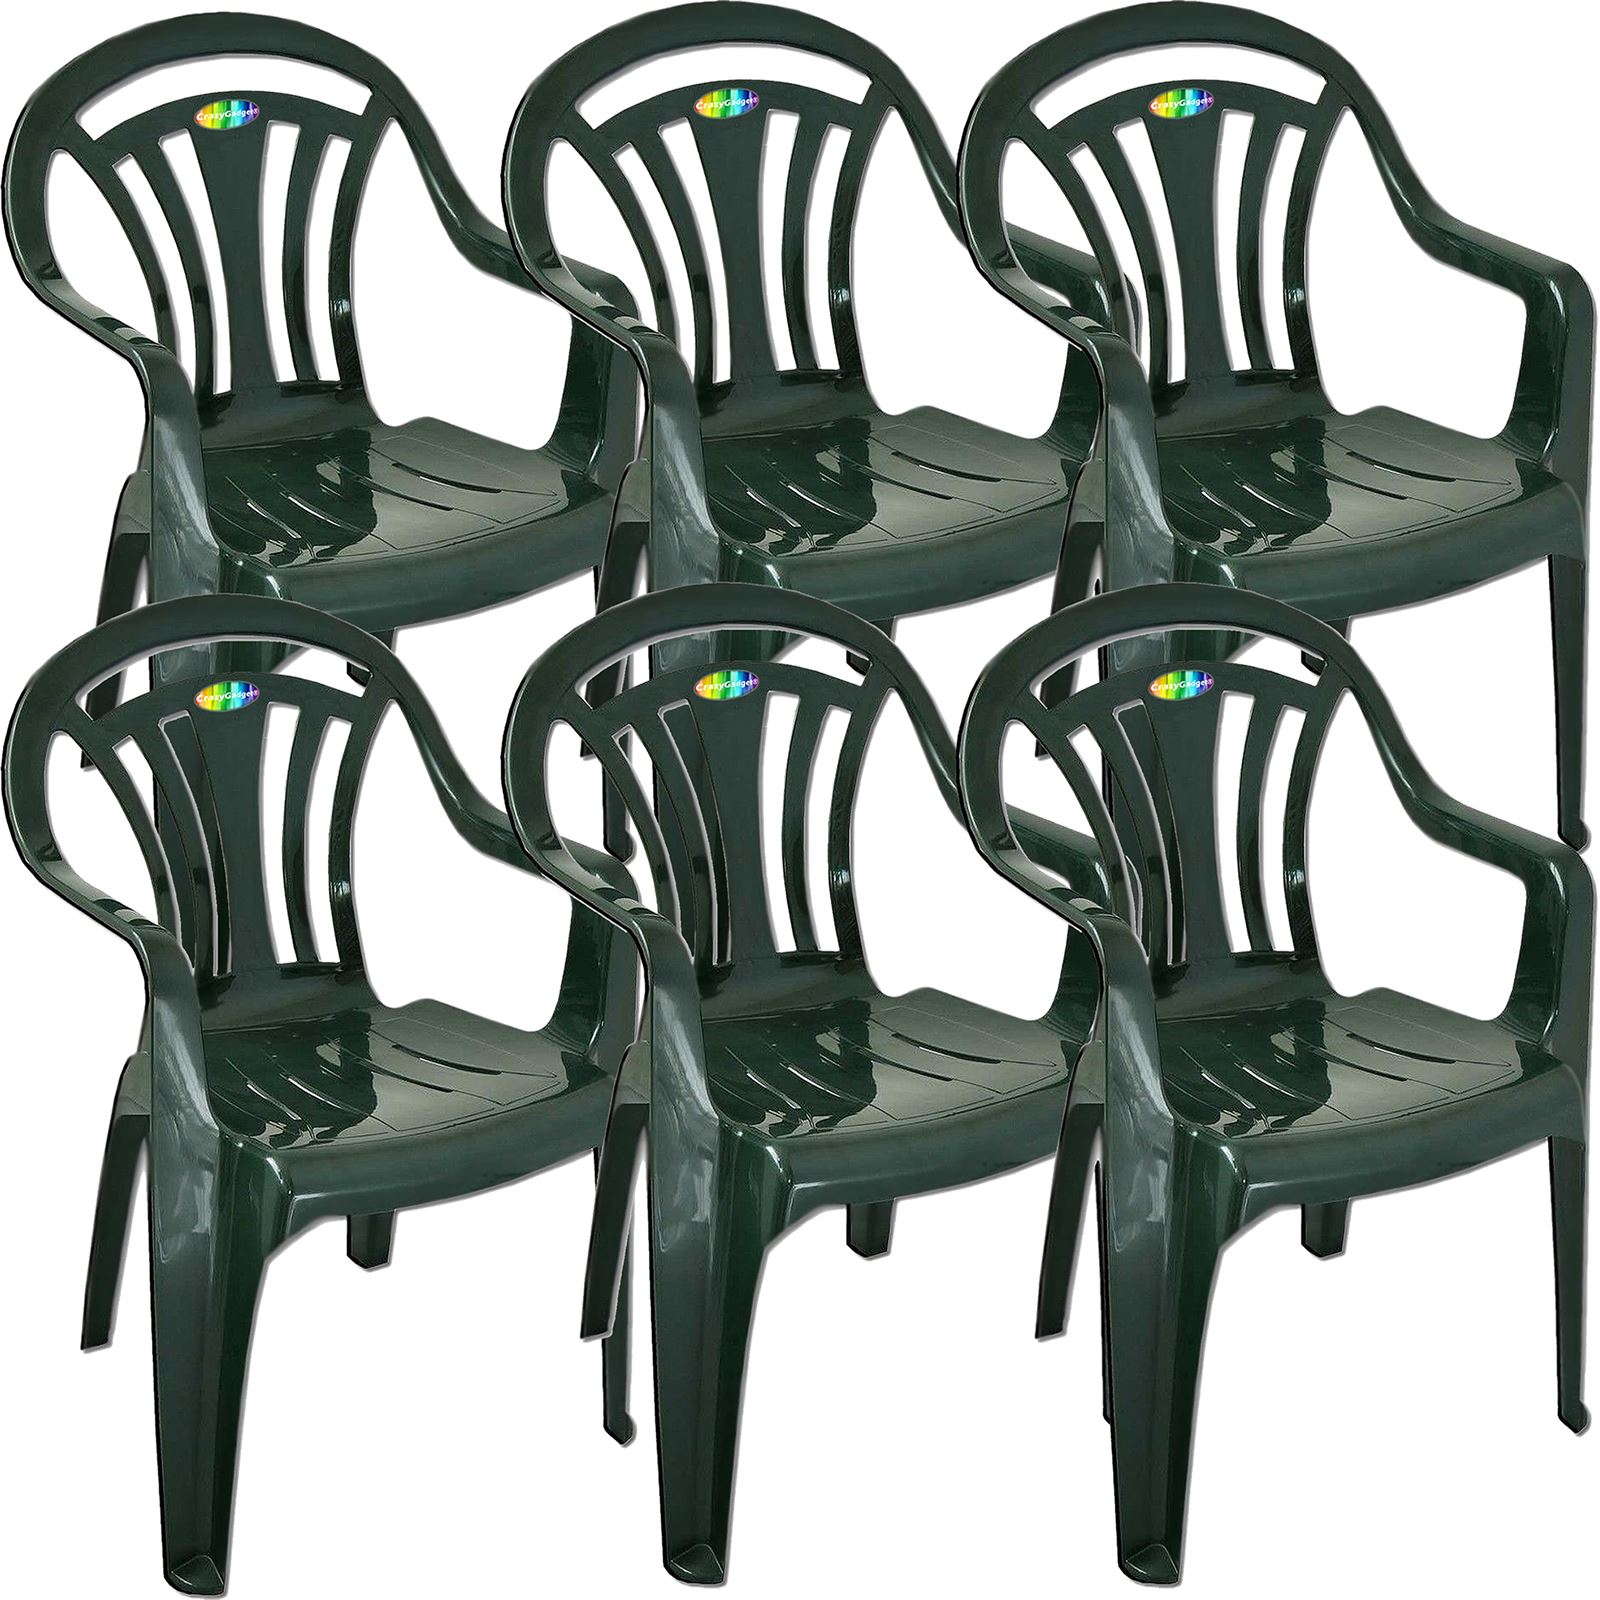 Outdoor Plastic Stackable Patio Lawn Garden Chair Durable Leightweight Colours